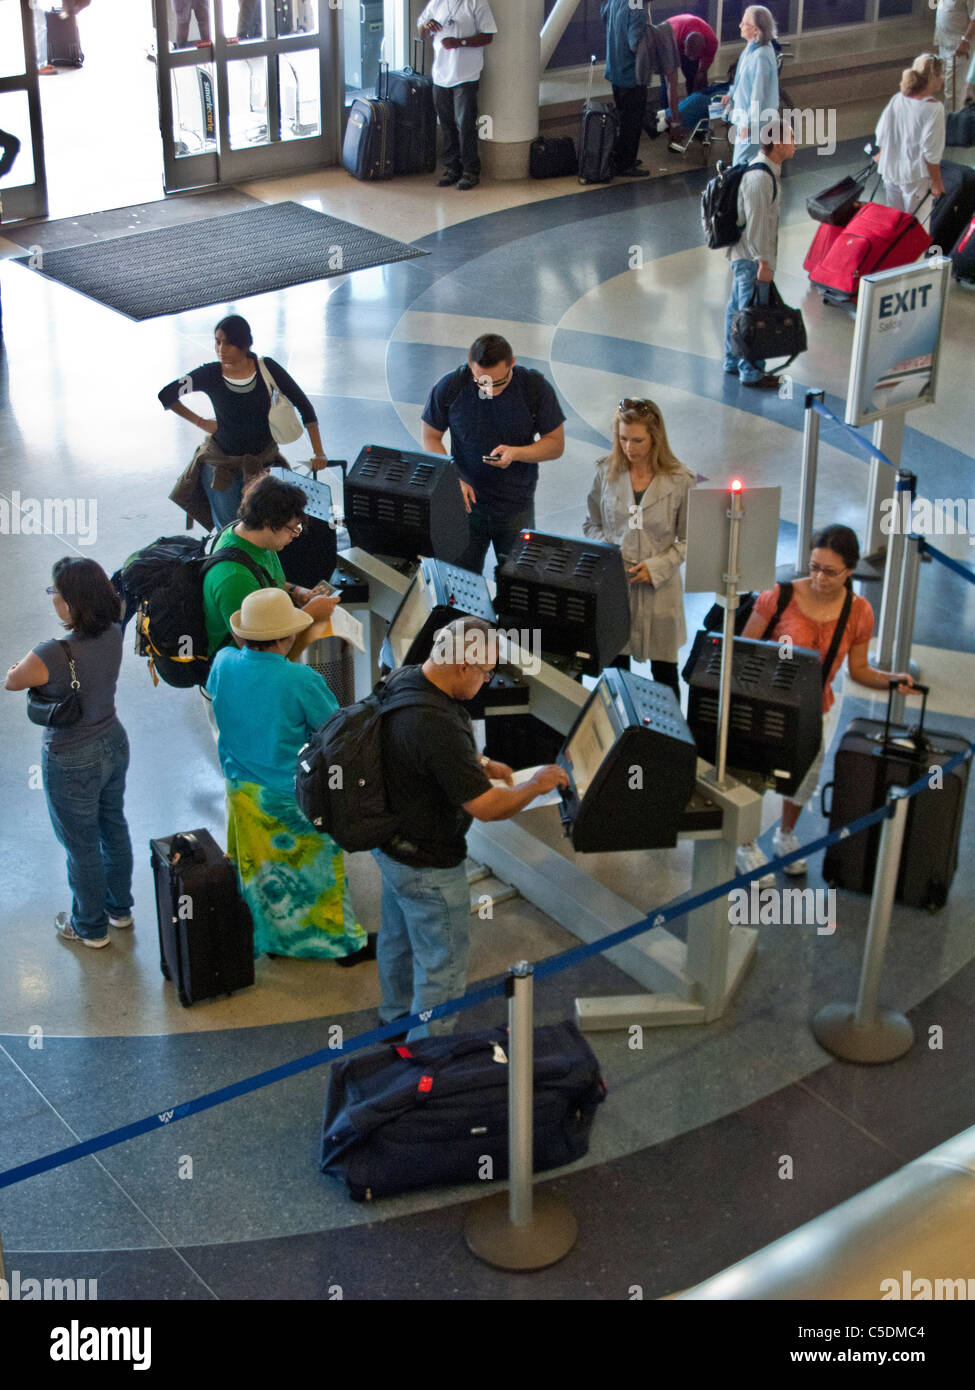 Airline passengers obtain boarding passes at computer terminals at Los Angeles International Airport, also known - Stock Image